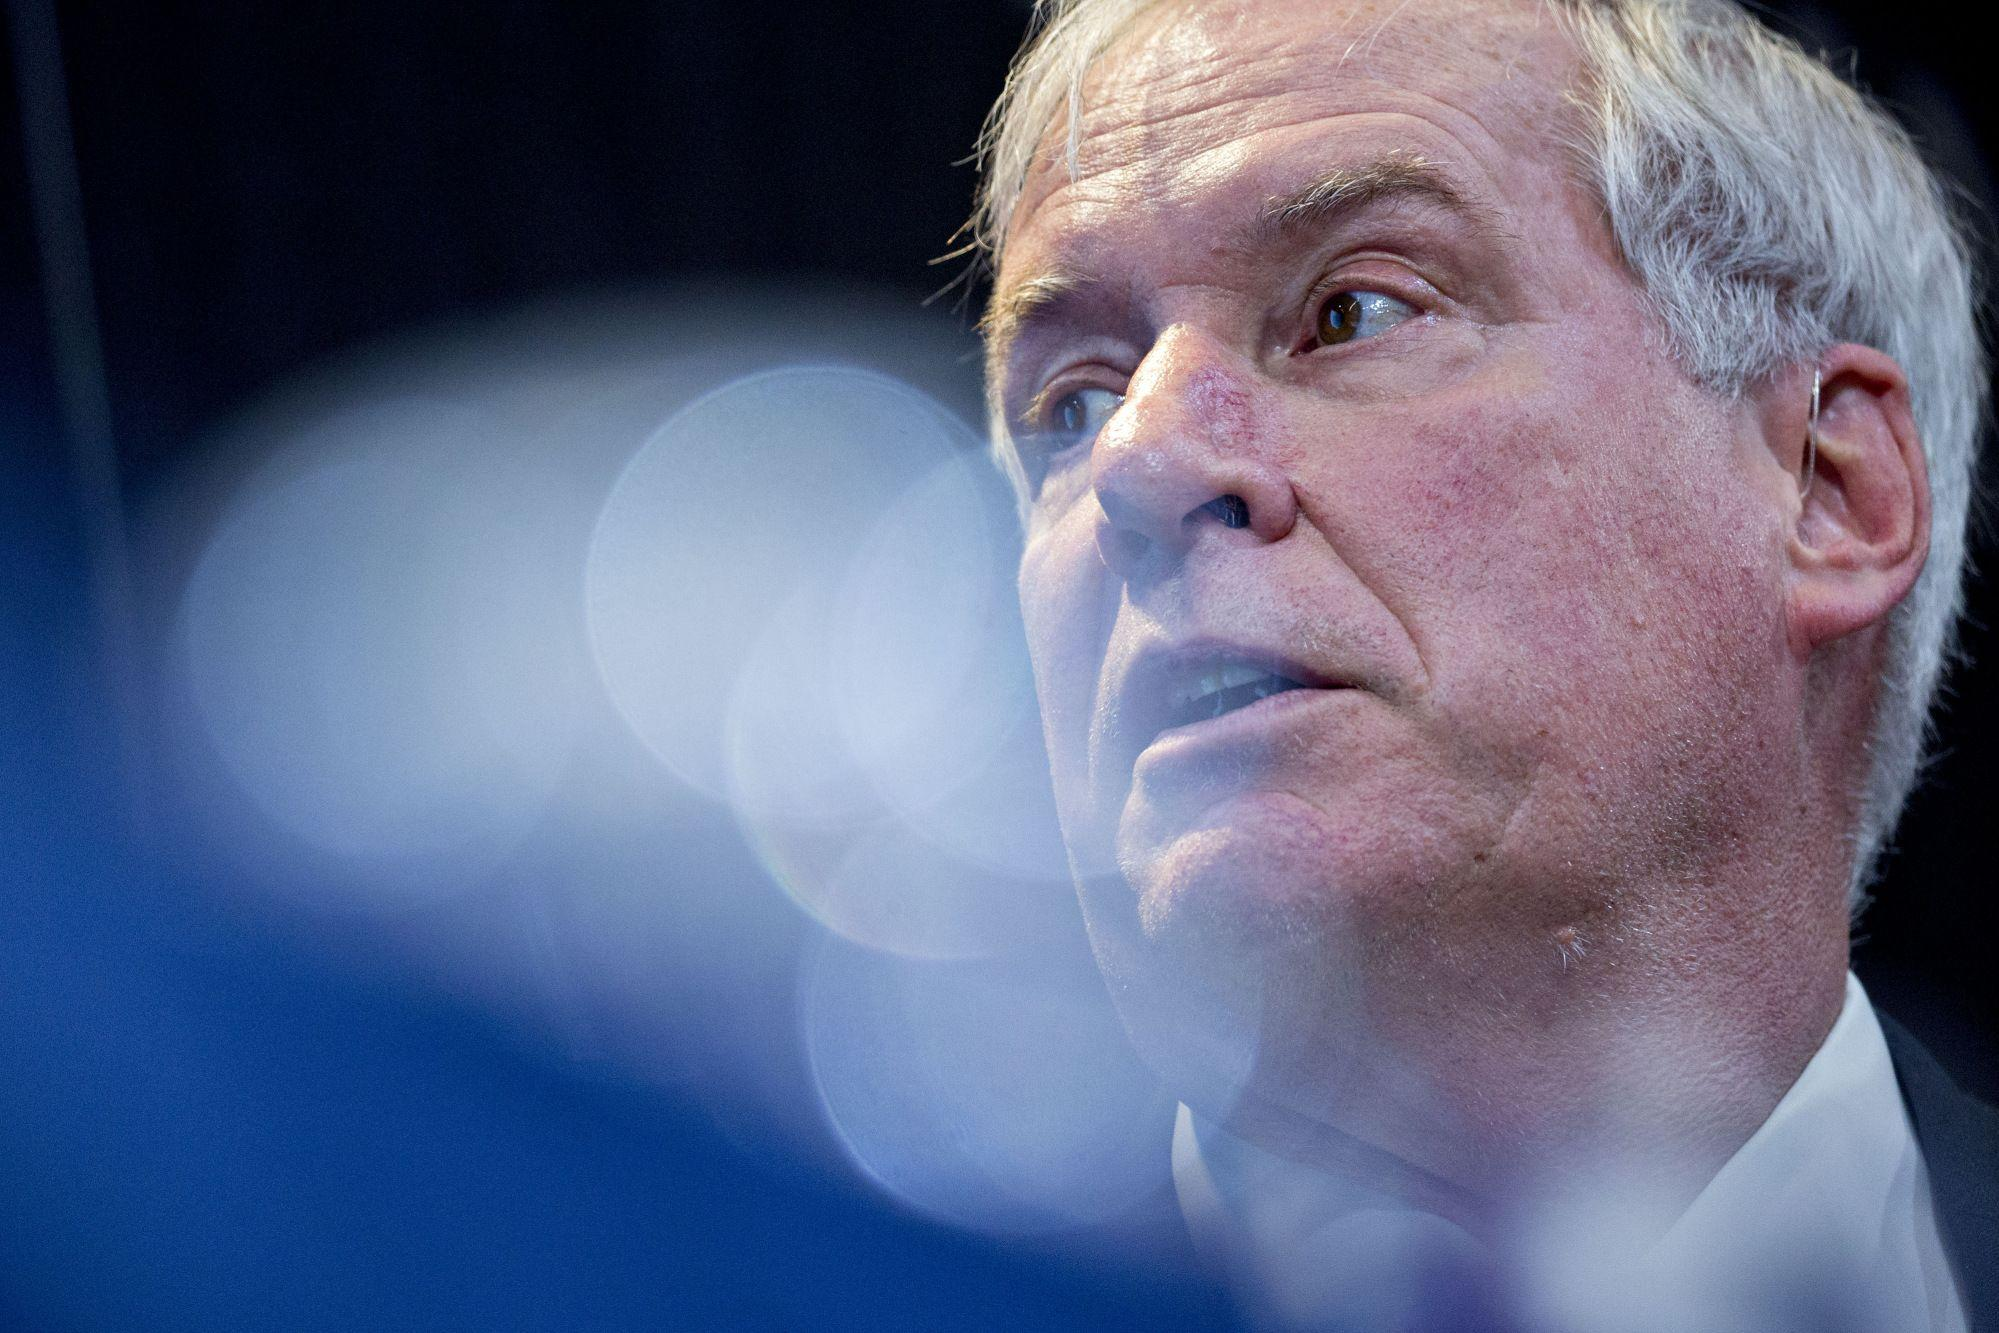 Fed's Rosengren Says Pursuing 2% Inflation Could Distort Markets